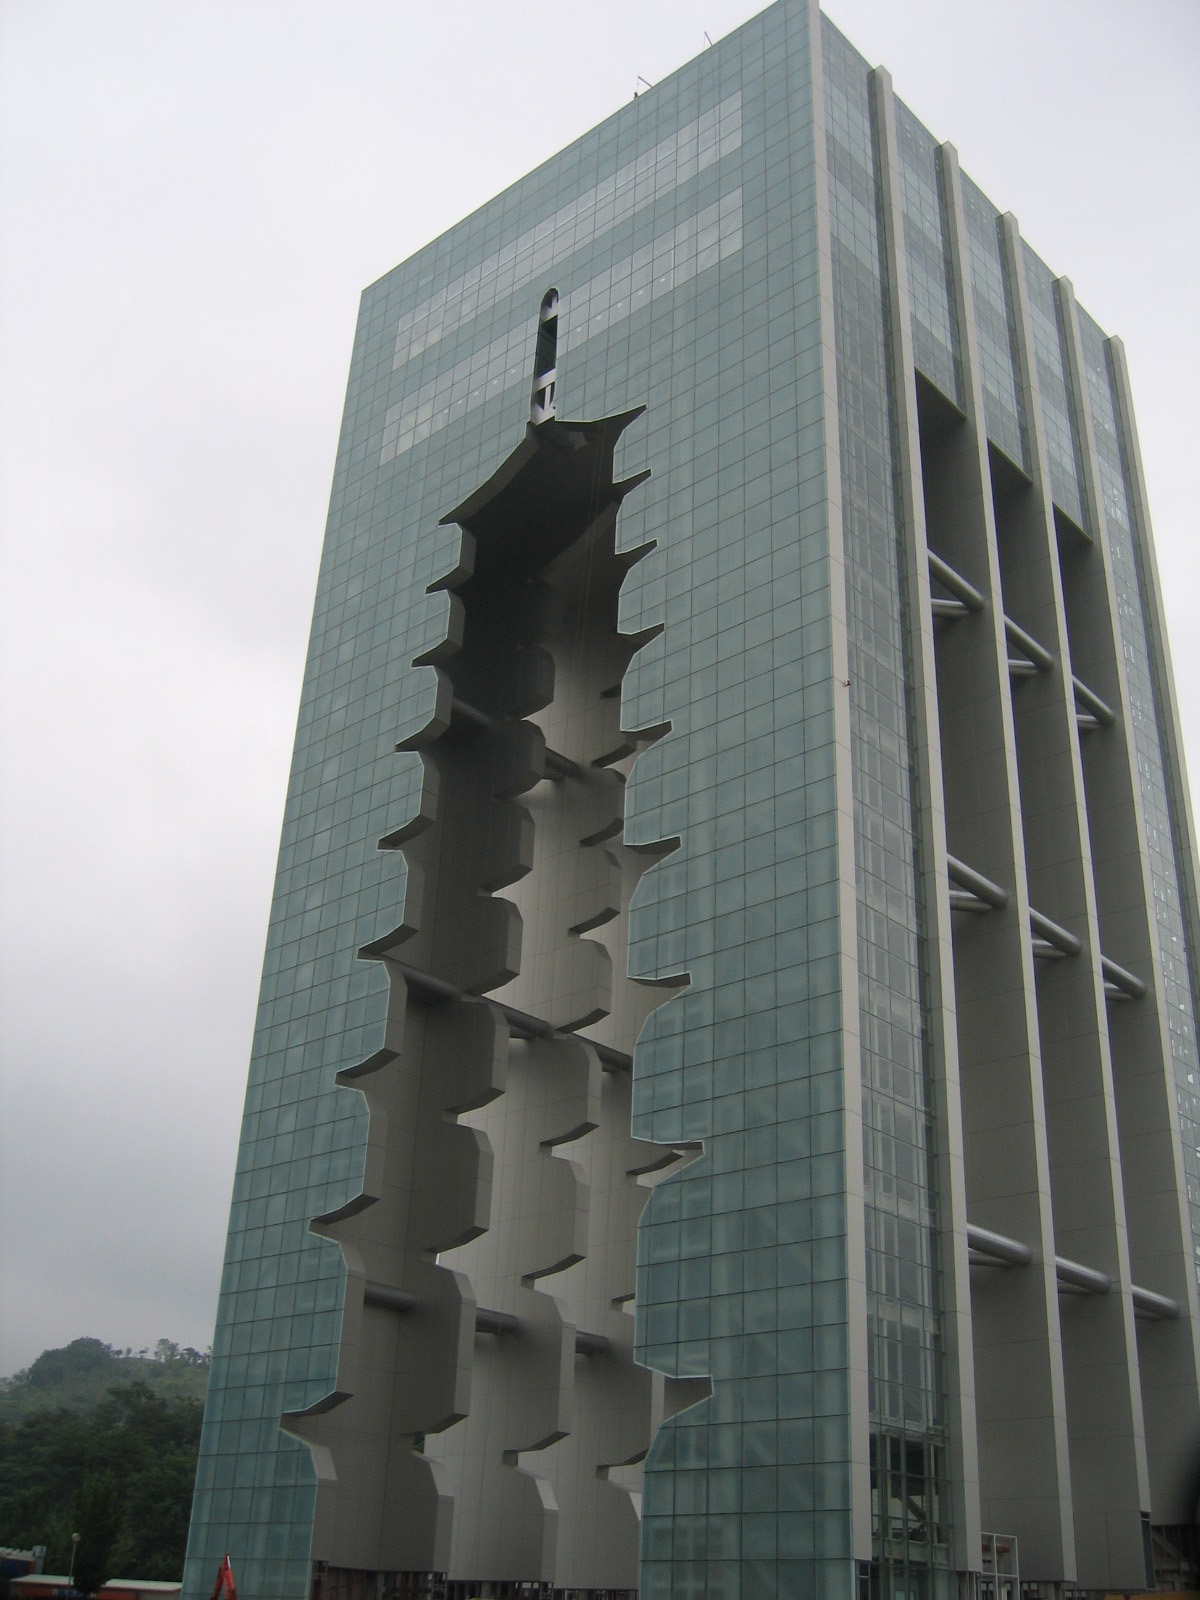 Coil Anodized Aluminum Paneling Reflects Korean Culture